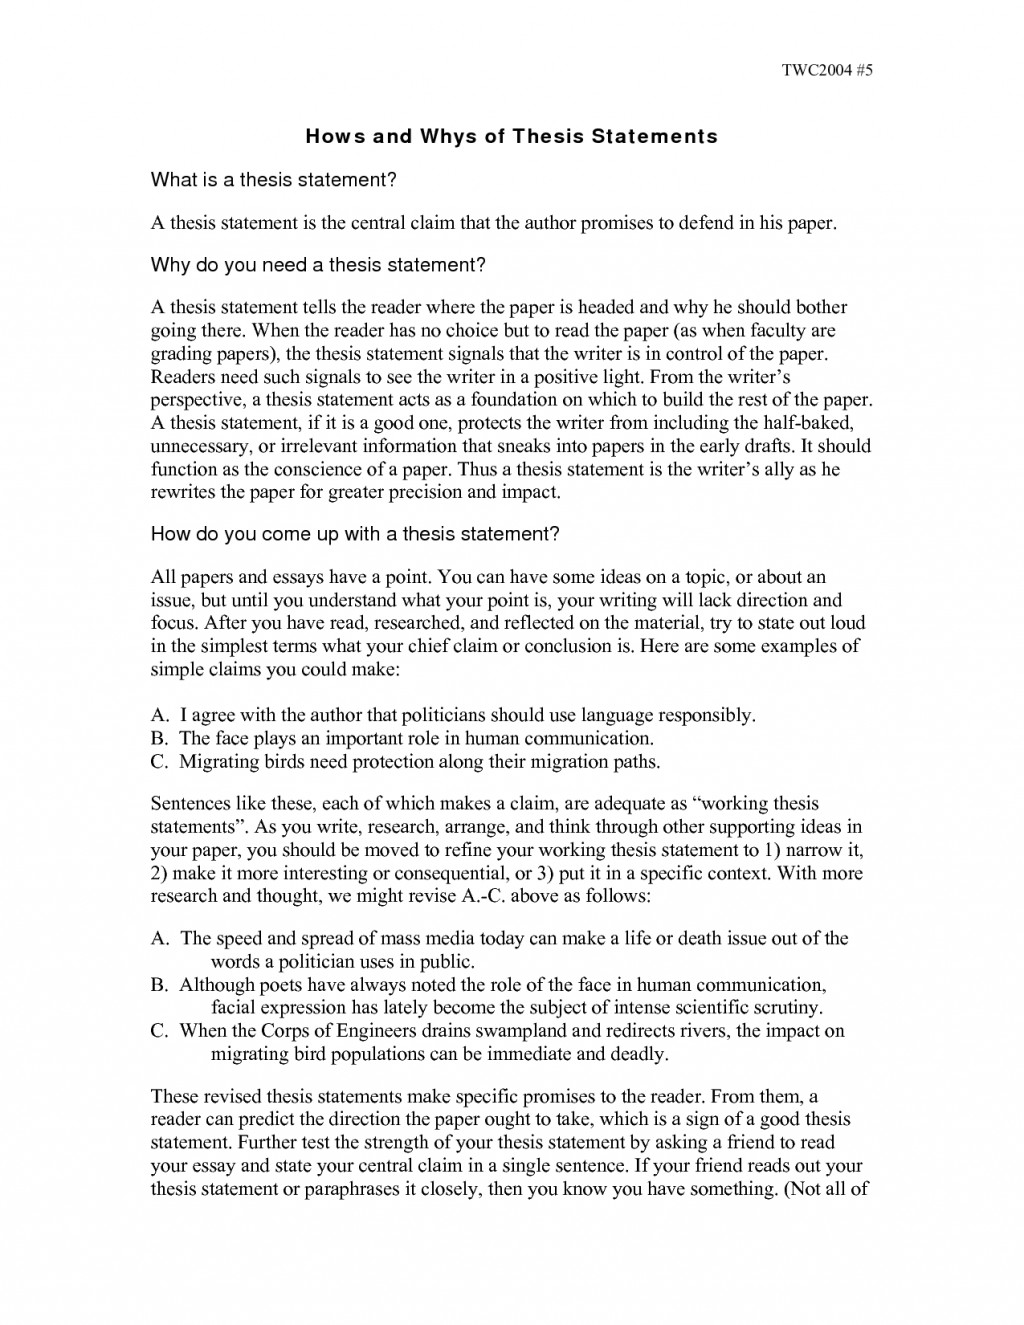 003 How To Write Thesis Statement For Science Research Shocking A Paper Large